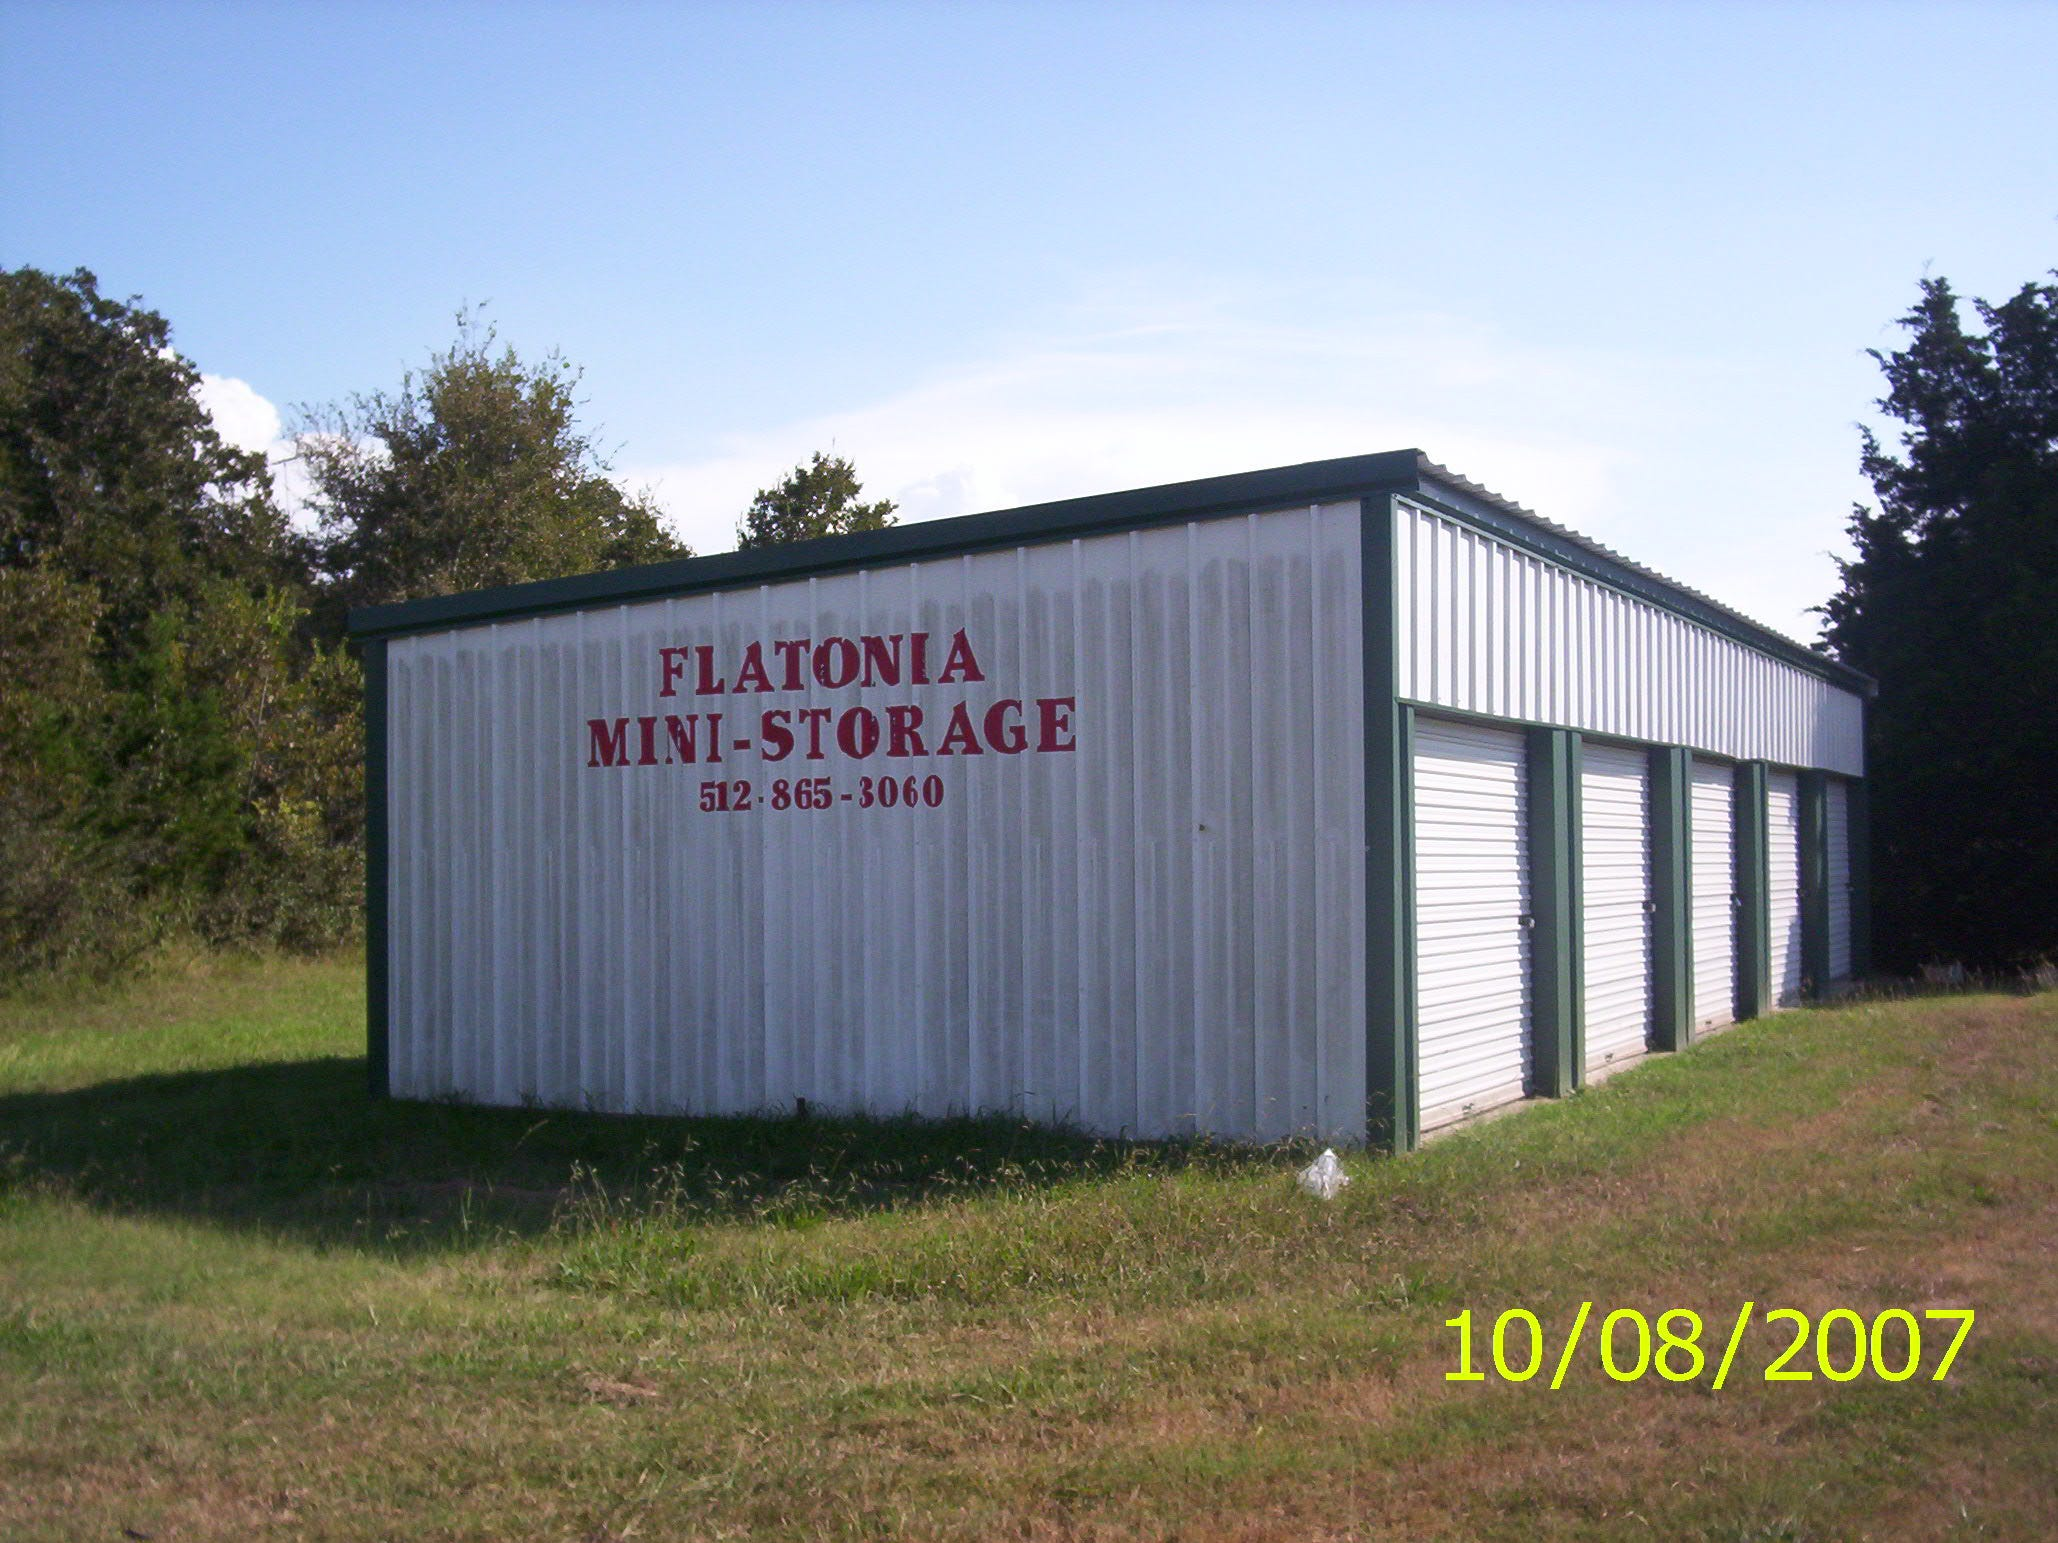 Tommy and Eddie Tipton own this mini storage commercial site near Flatonia, Texas. It's market value is $22,820.